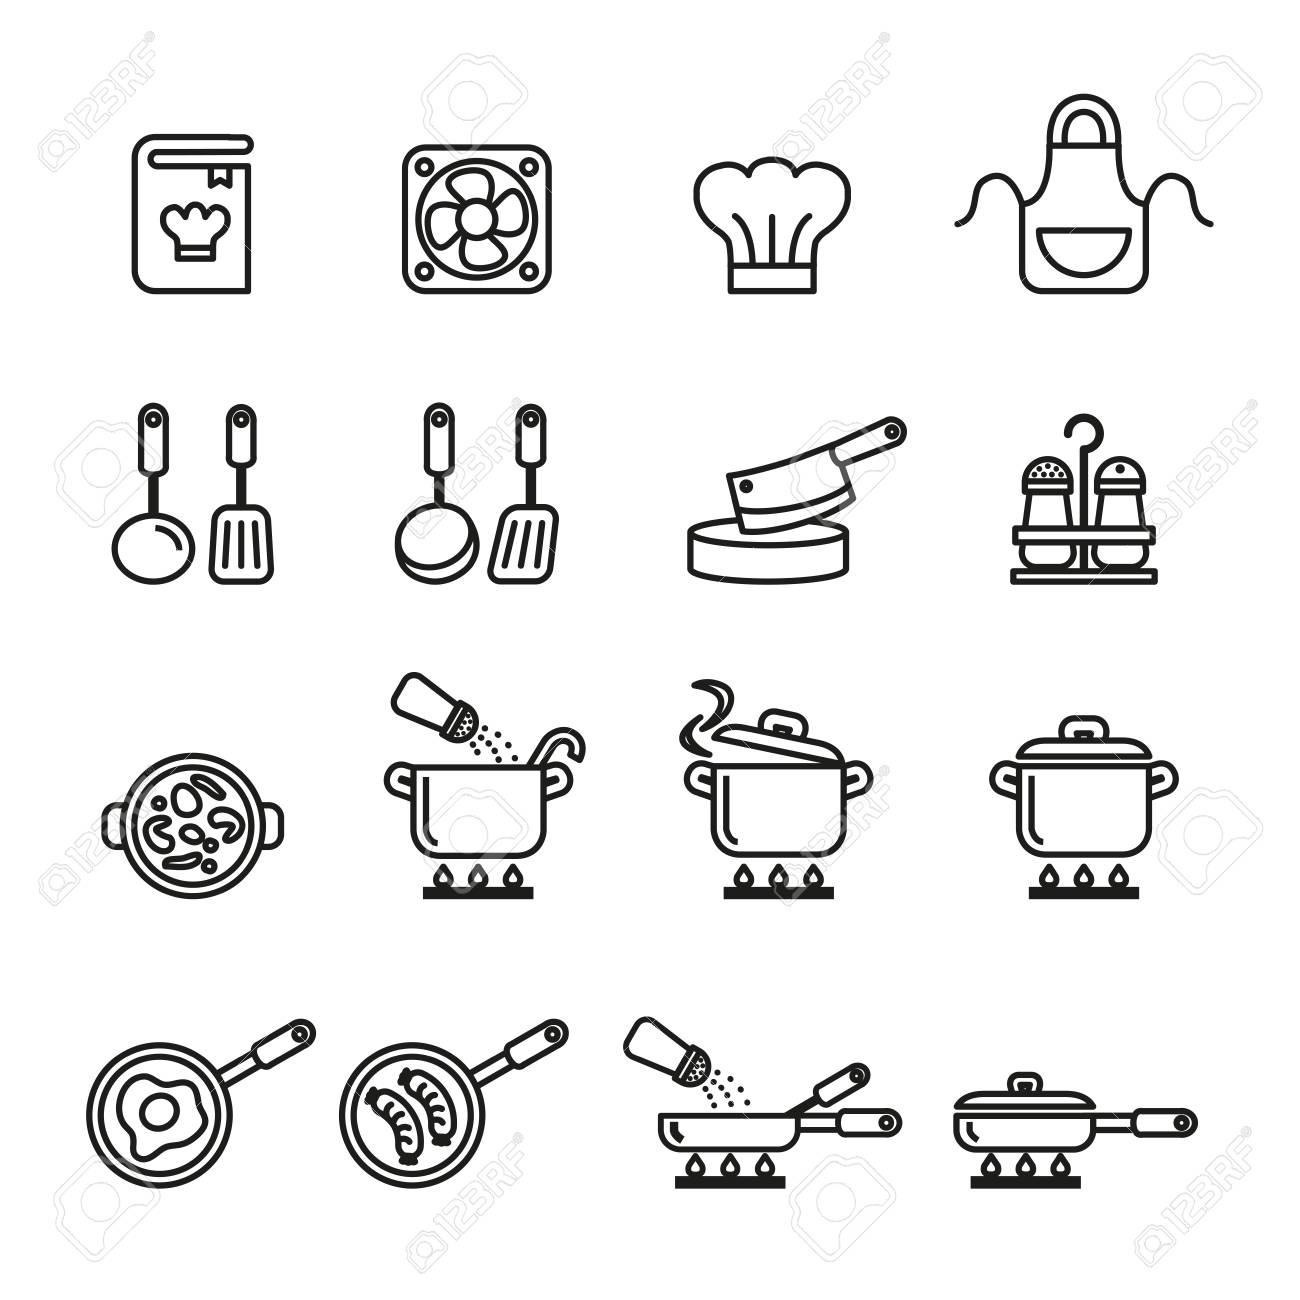 A cooking, kitchen tools and utensils icons set. Line Style stock vector. - 80331980